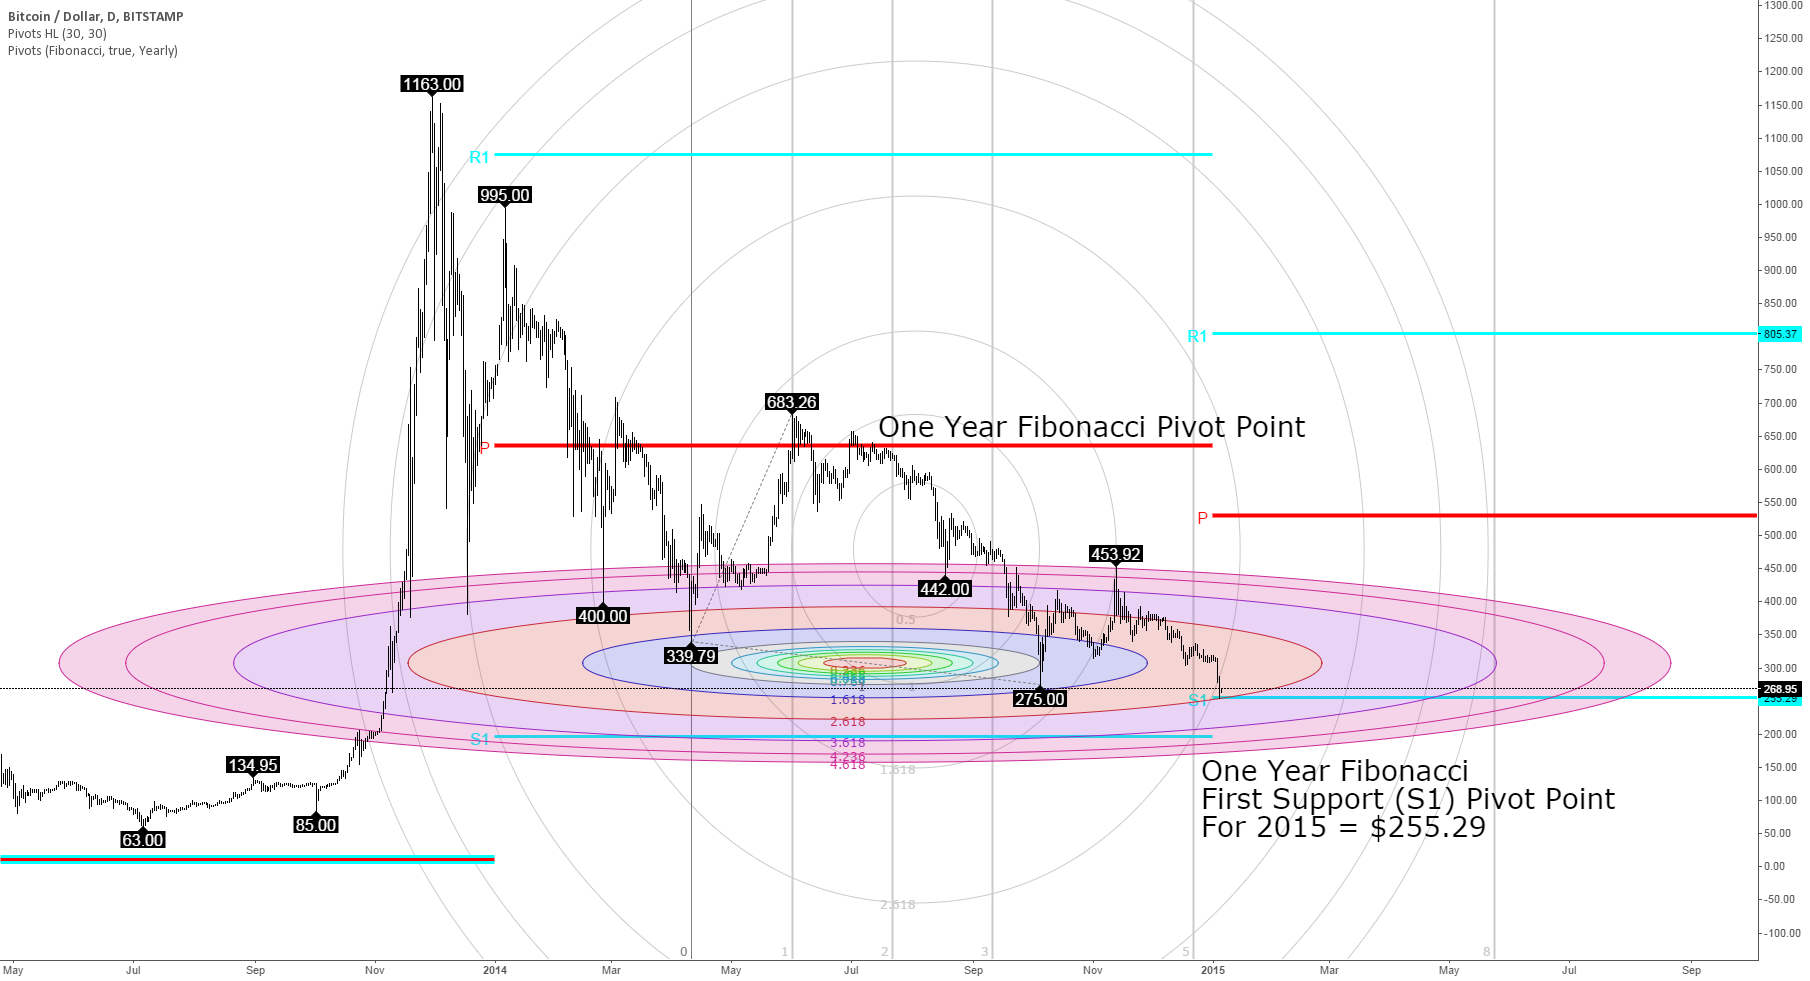 Bitcoin at Yearly Fibonacci Support 1